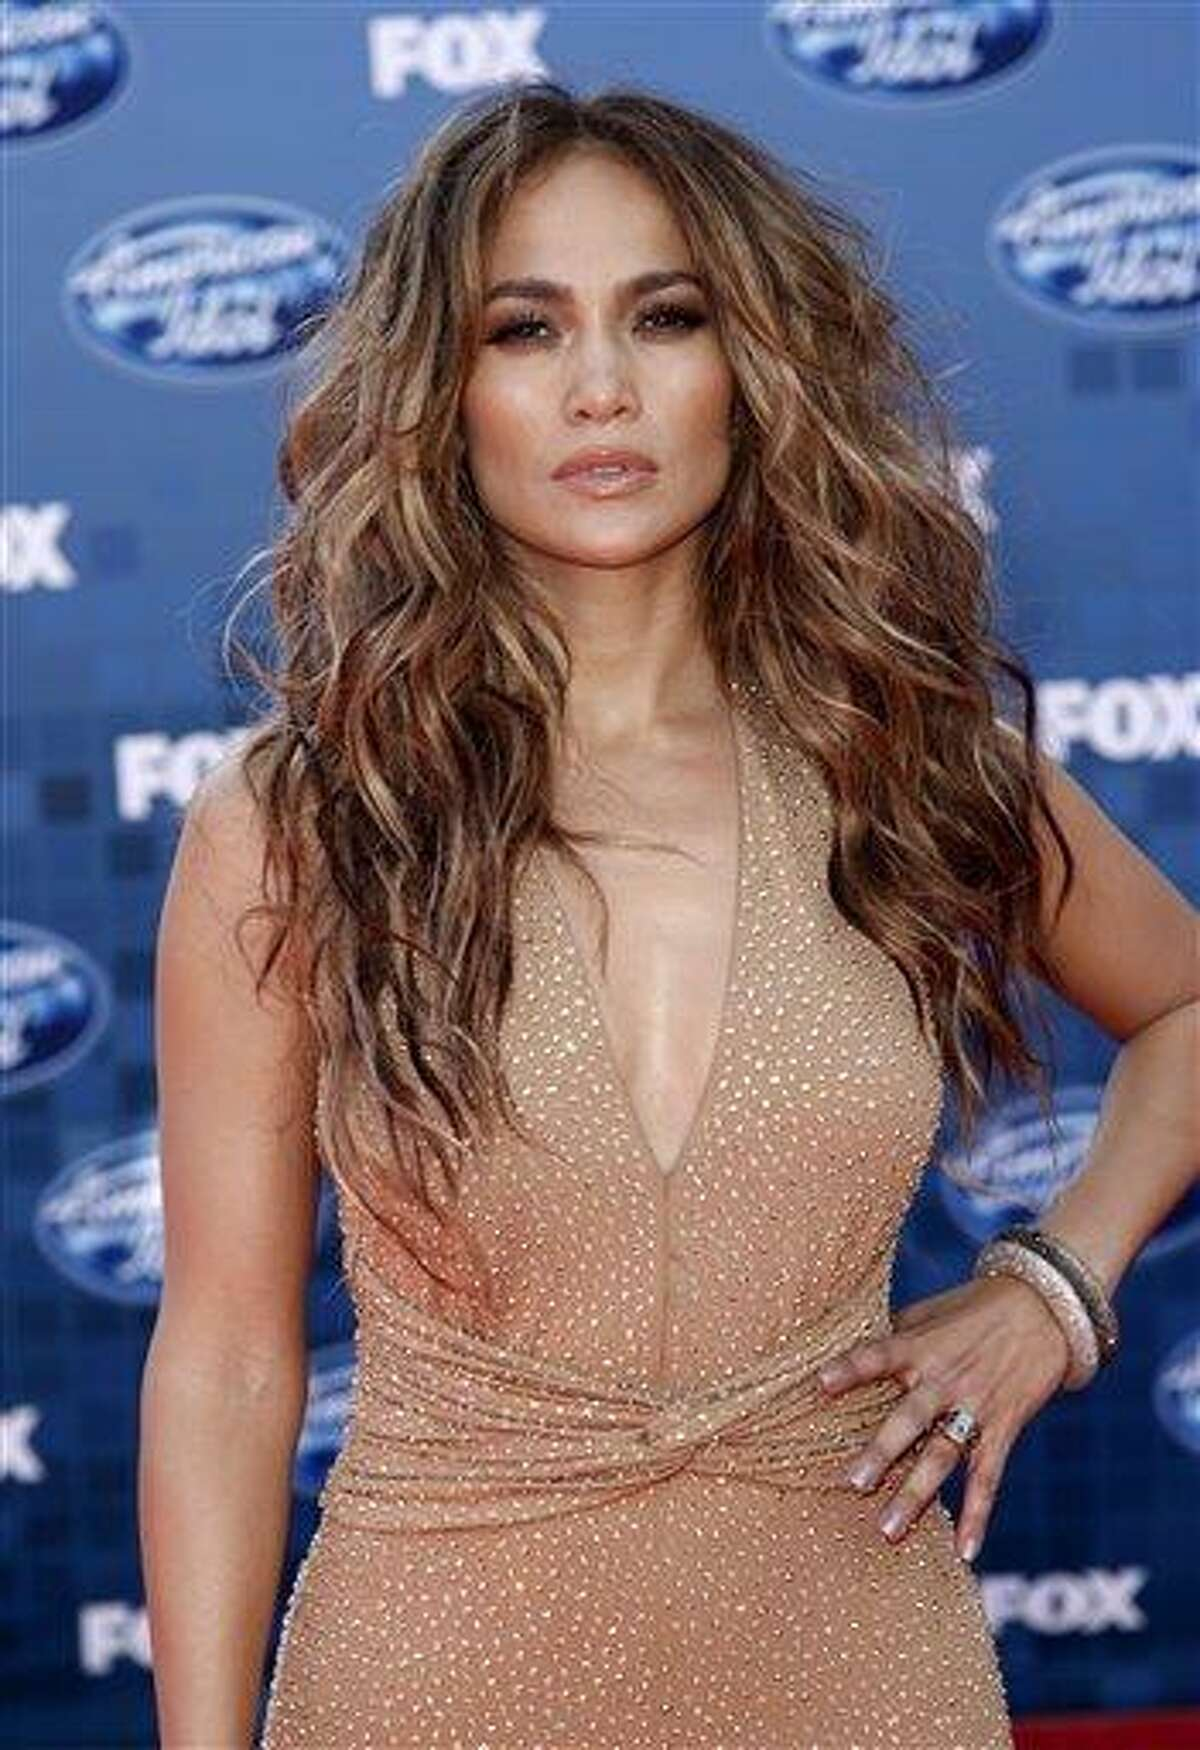 In this May 25, 2011 file photo, actress and singer Jennifer Lopez arrives at the American Idol Finale in Los Angeles.